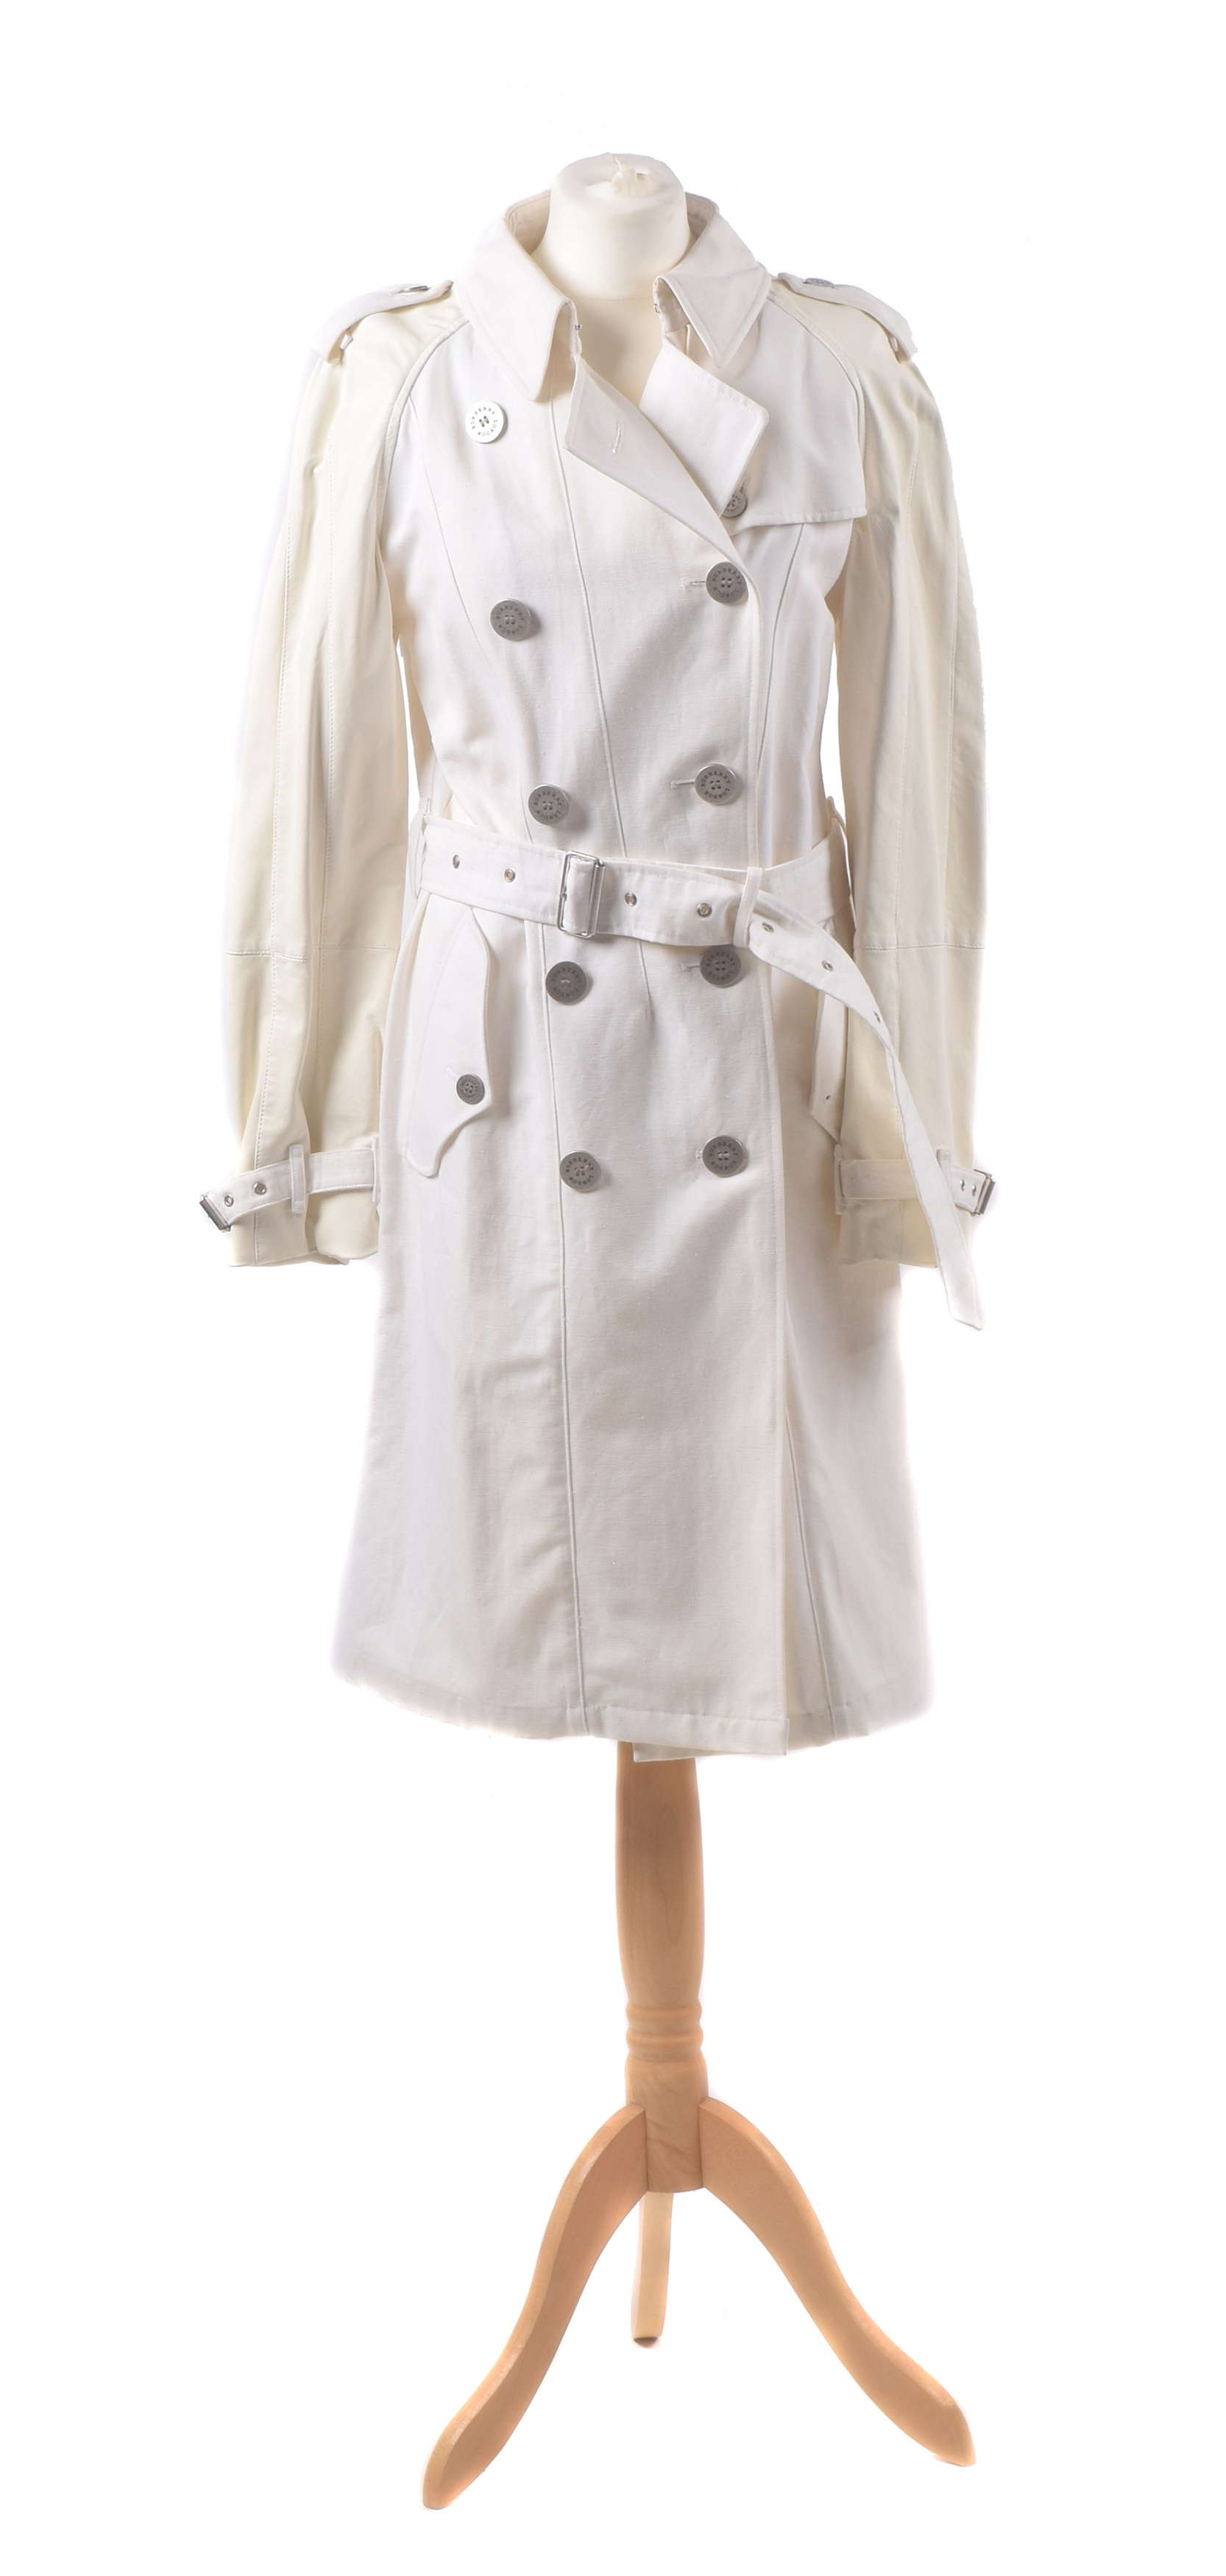 A Burberry trench coat, the cream canvas trench coat with cream leather sleeves and oversized silver tone buttons bearing maker's name, size 10.